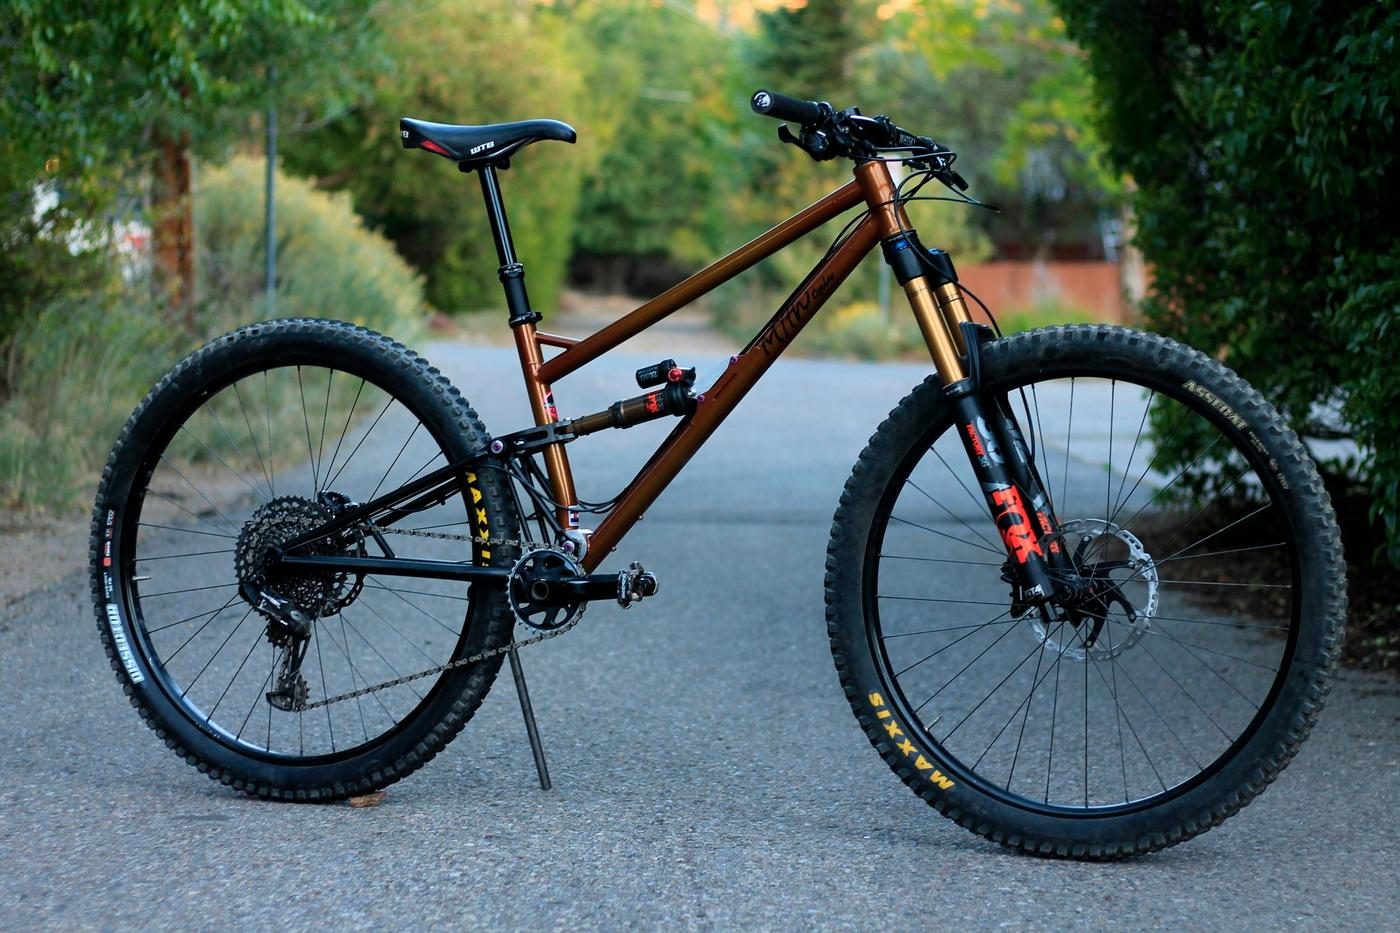 The Myth Cycles Zodiac is a Colorado-Made Steel Full Suspension MTB